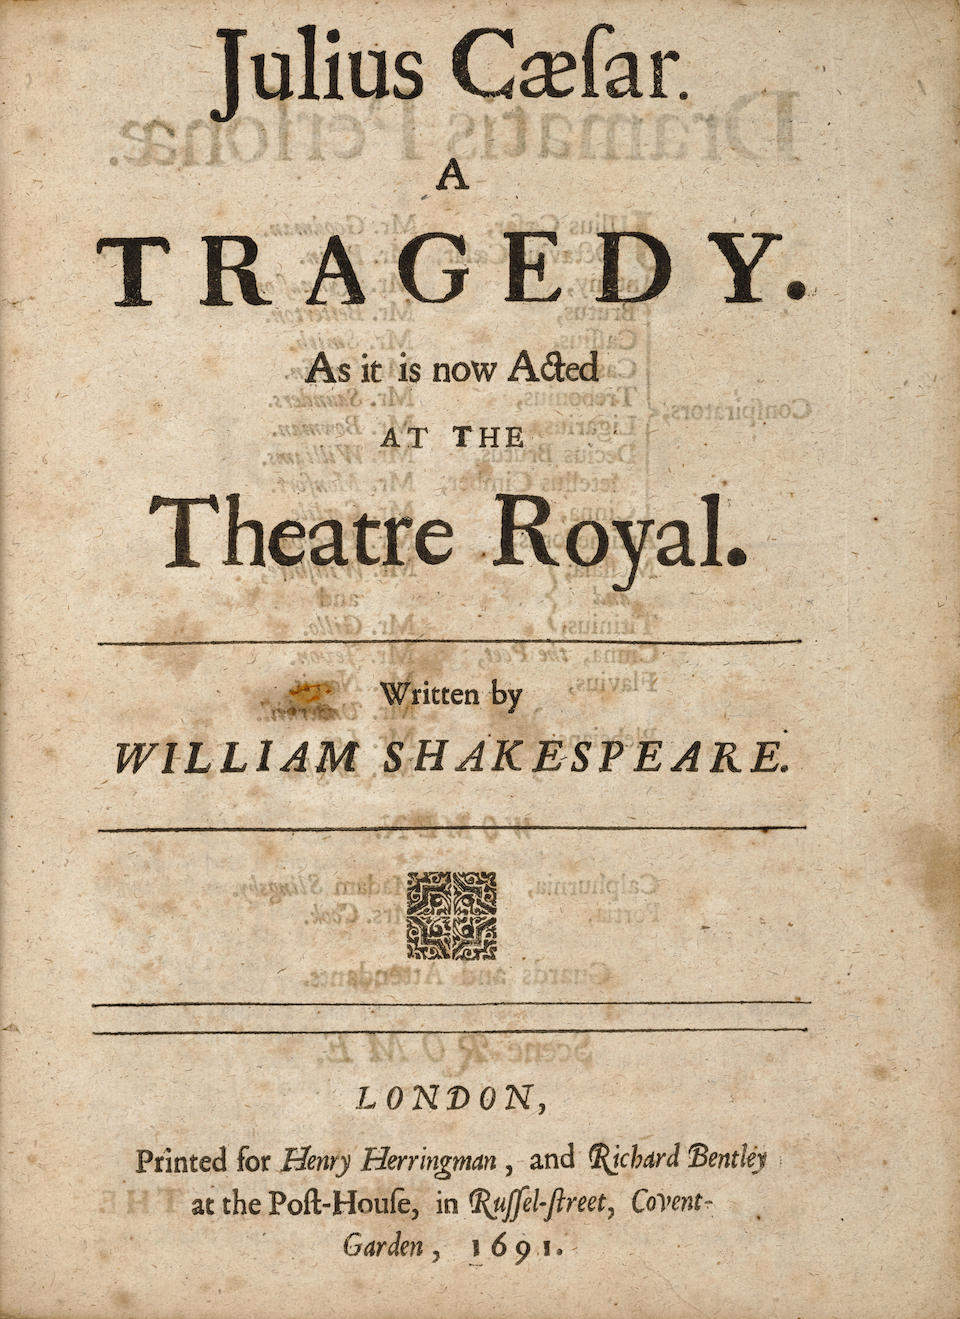 SHAKESPEARE, WILLIAM. 1564-1616. Julius Caesar: a Tragedy as it is now Acted at the Theatre Royal. London: Henry Herringman, 1691.